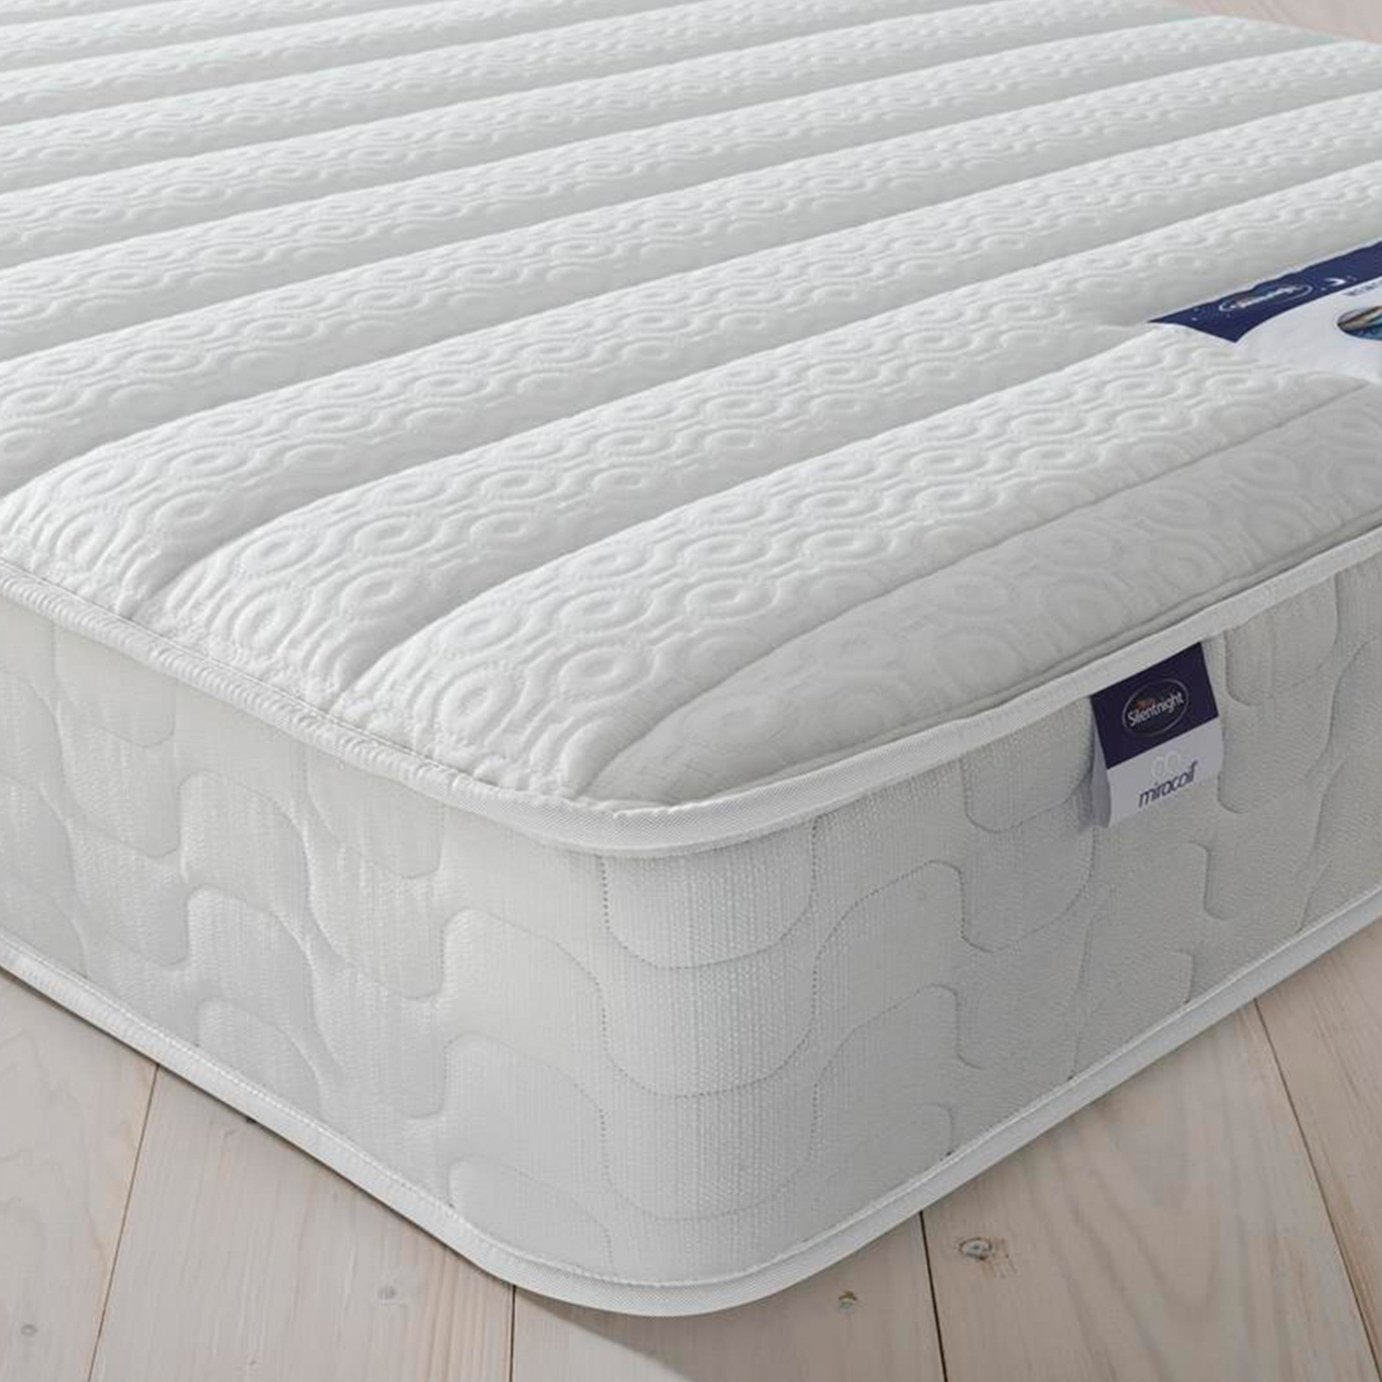 cheapest place to buy single mattress